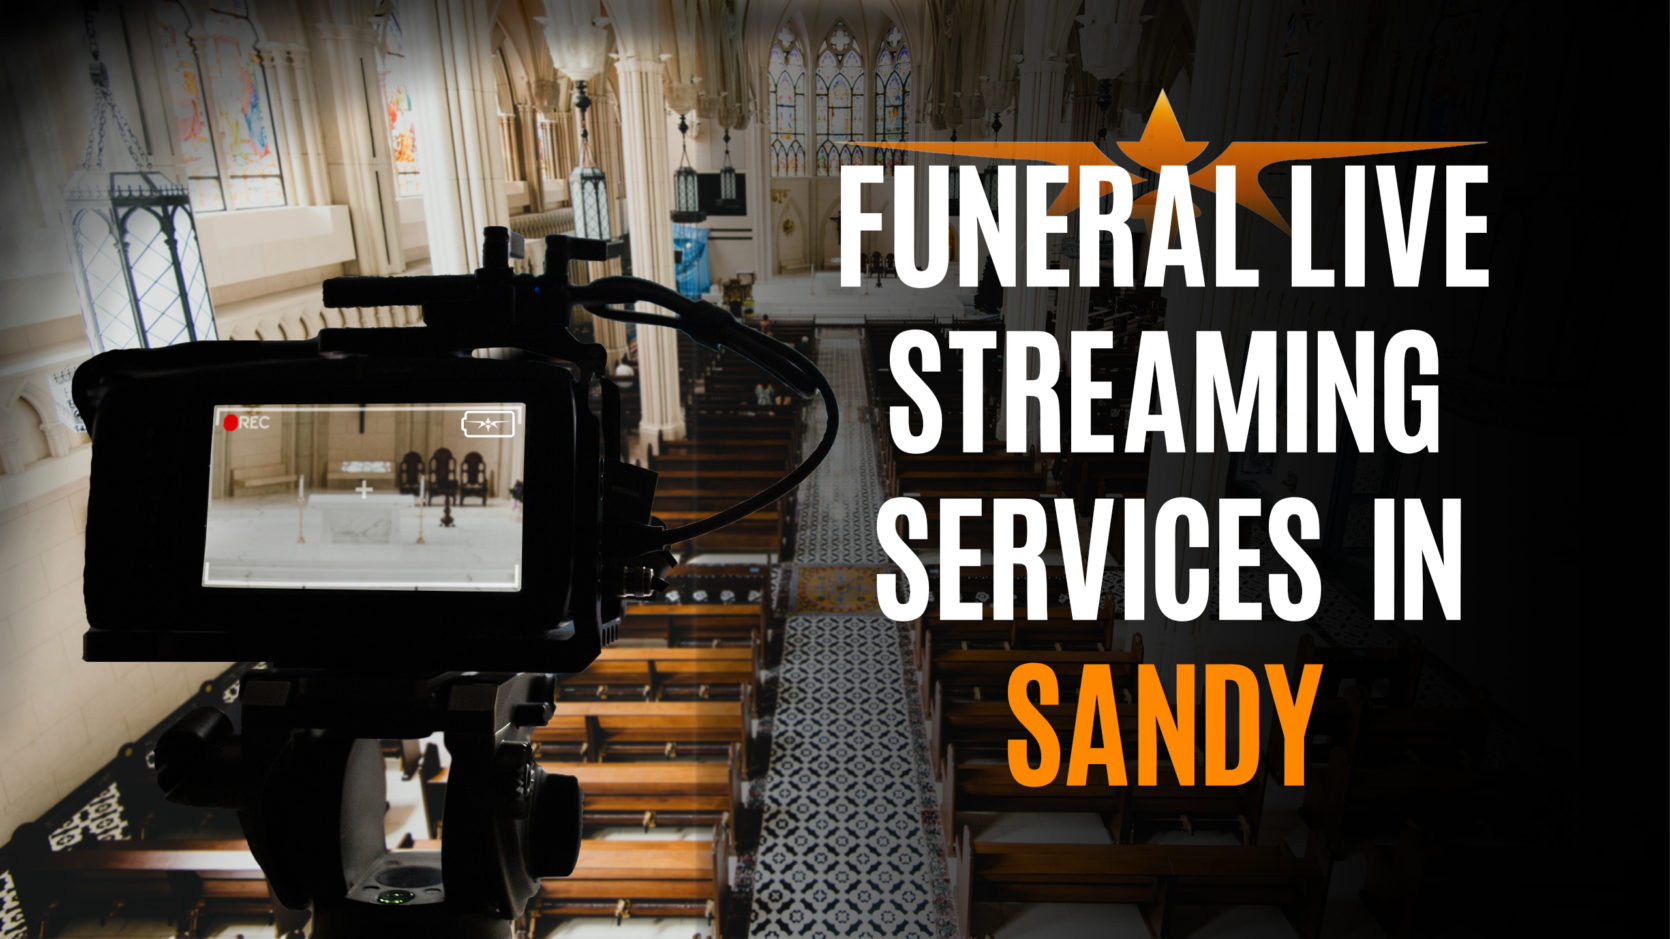 Funeral Live Streaming Services in Sandy